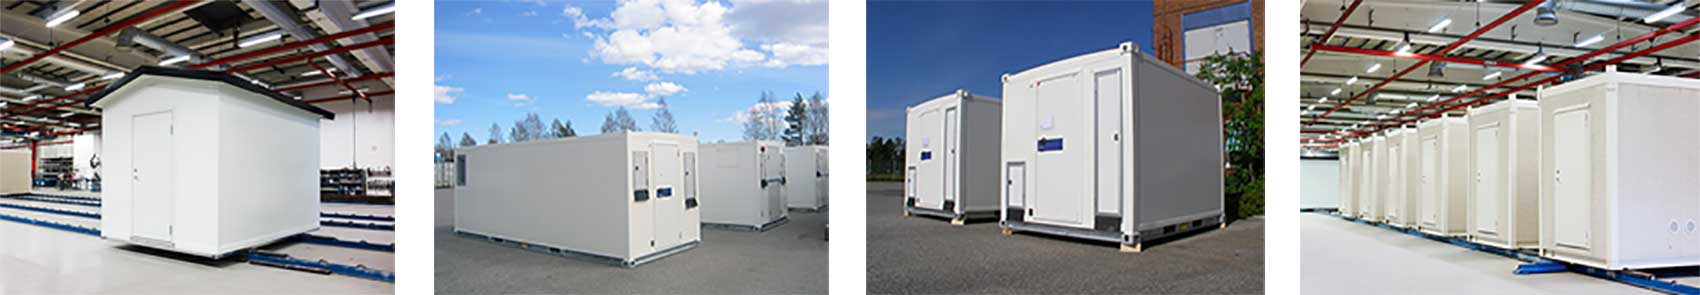 Prefabricated, modular data centres